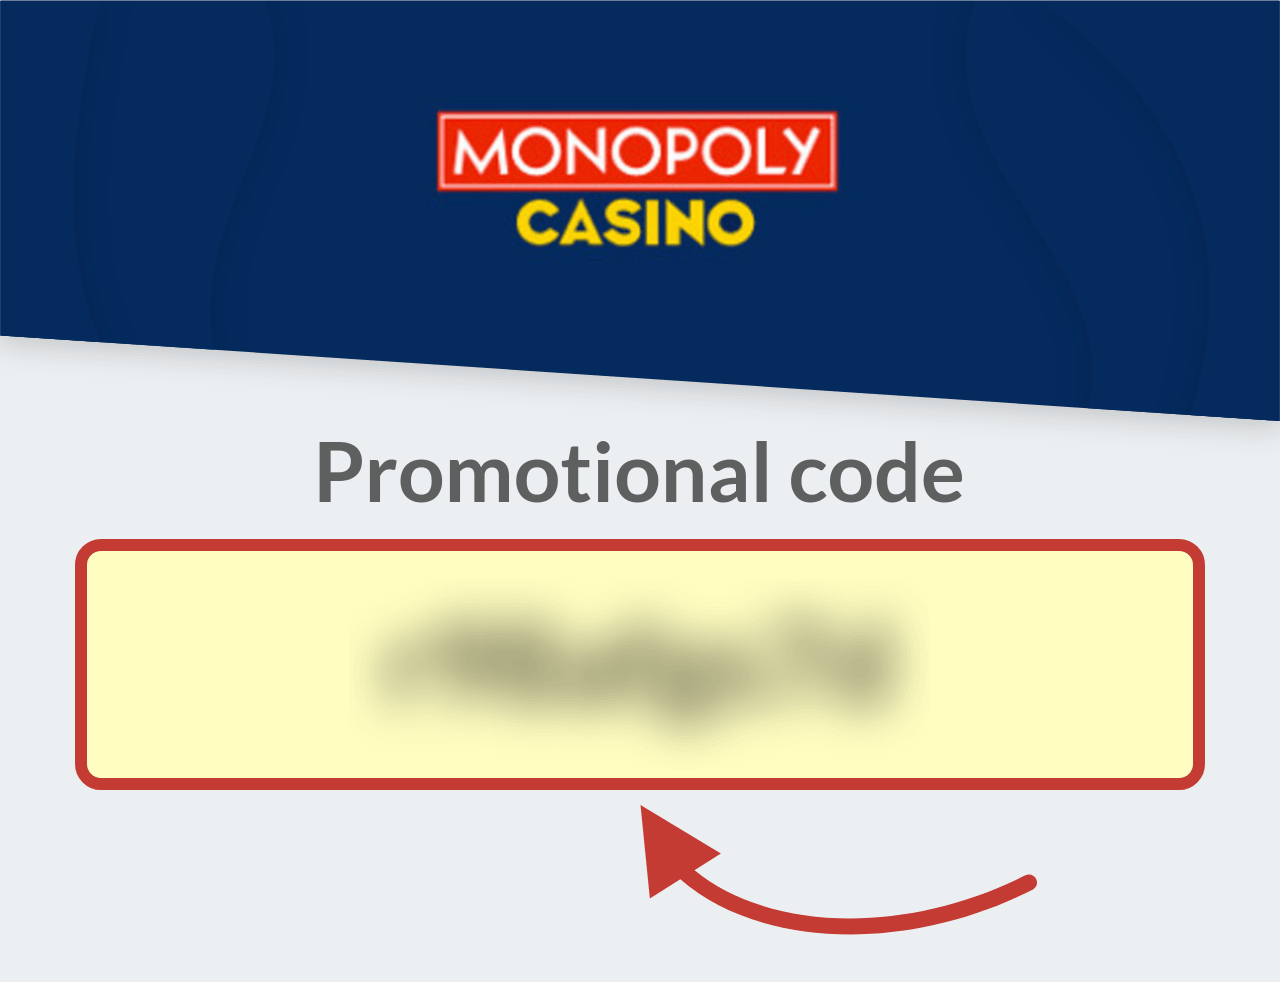 Monopoly Casino Promotional Code